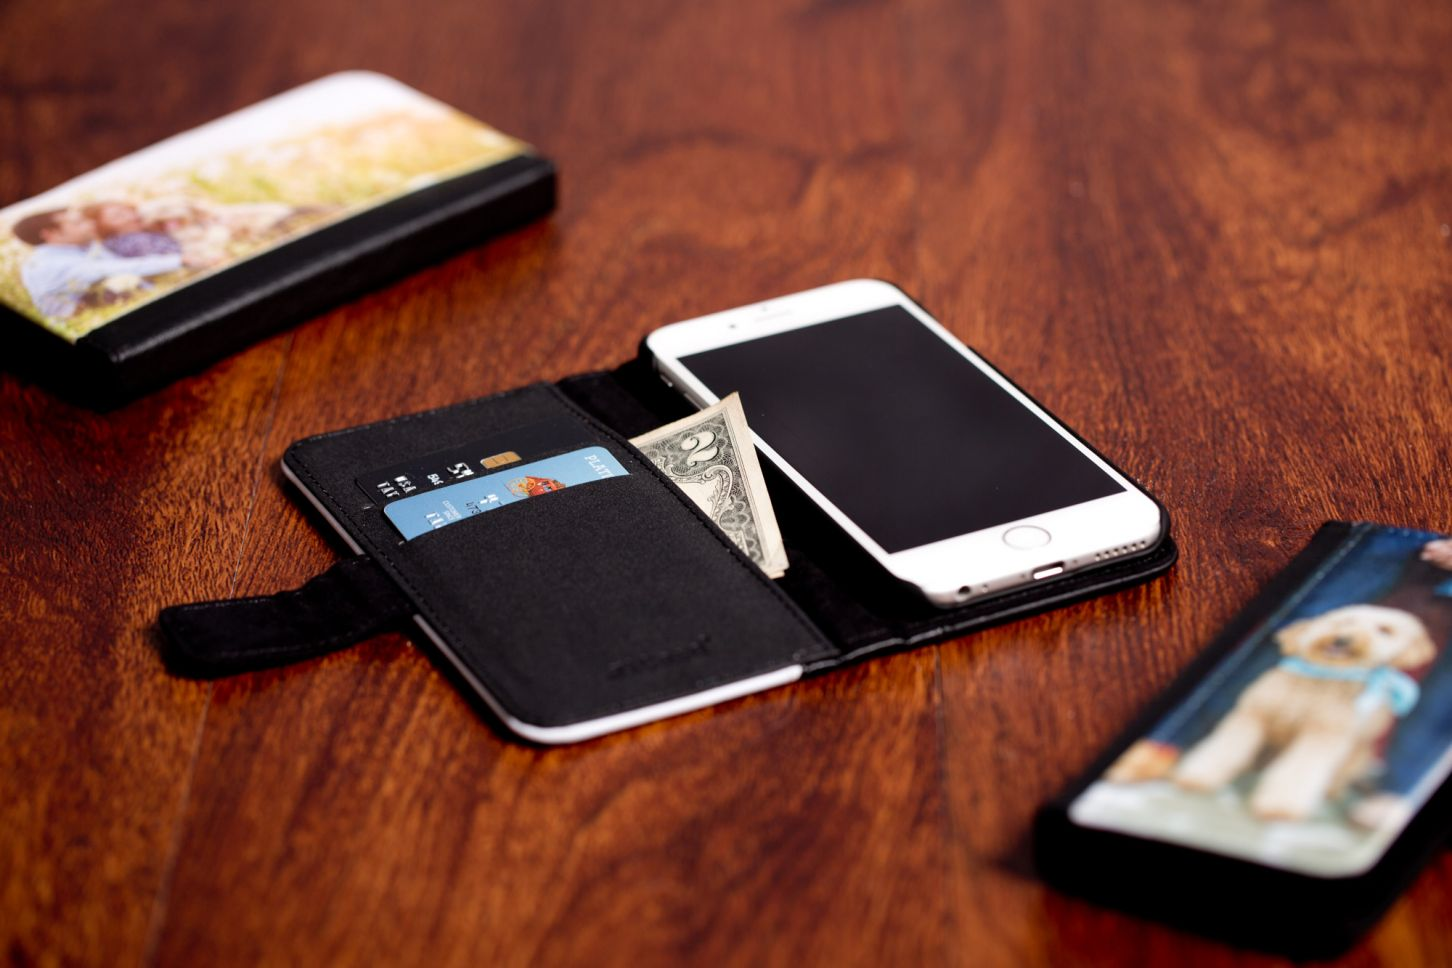 Another option is the fabric wallet case. Comes in black only with magnetic closure.